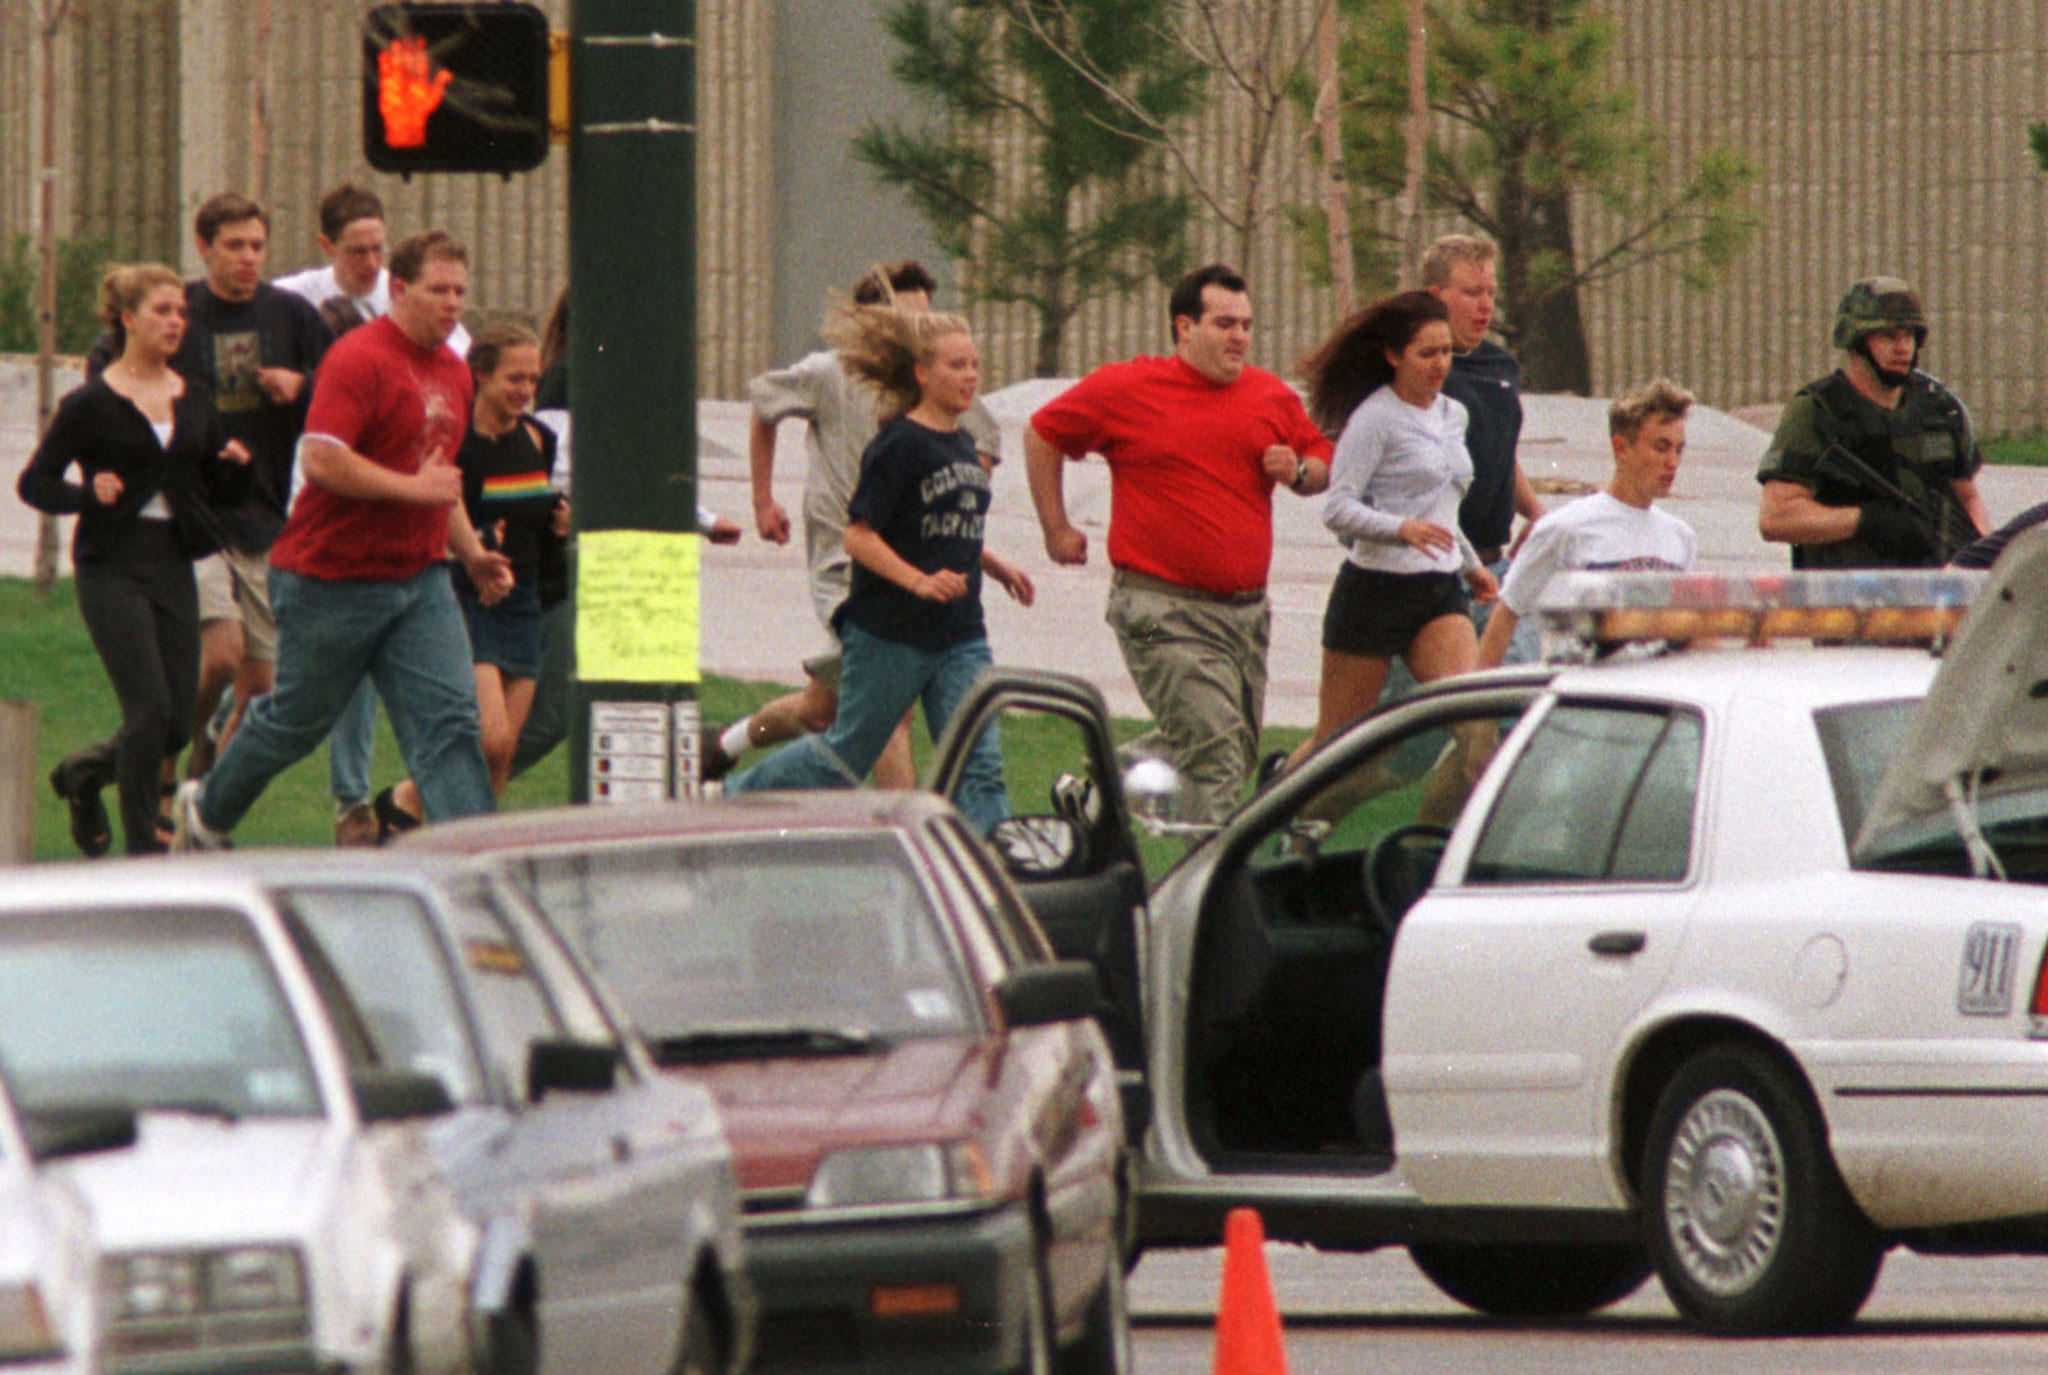 Columbine high school students run from the school after gunmen opened fire on terrified students, killing up to 25 people before taking their own lives on April 20, 1999 police said.